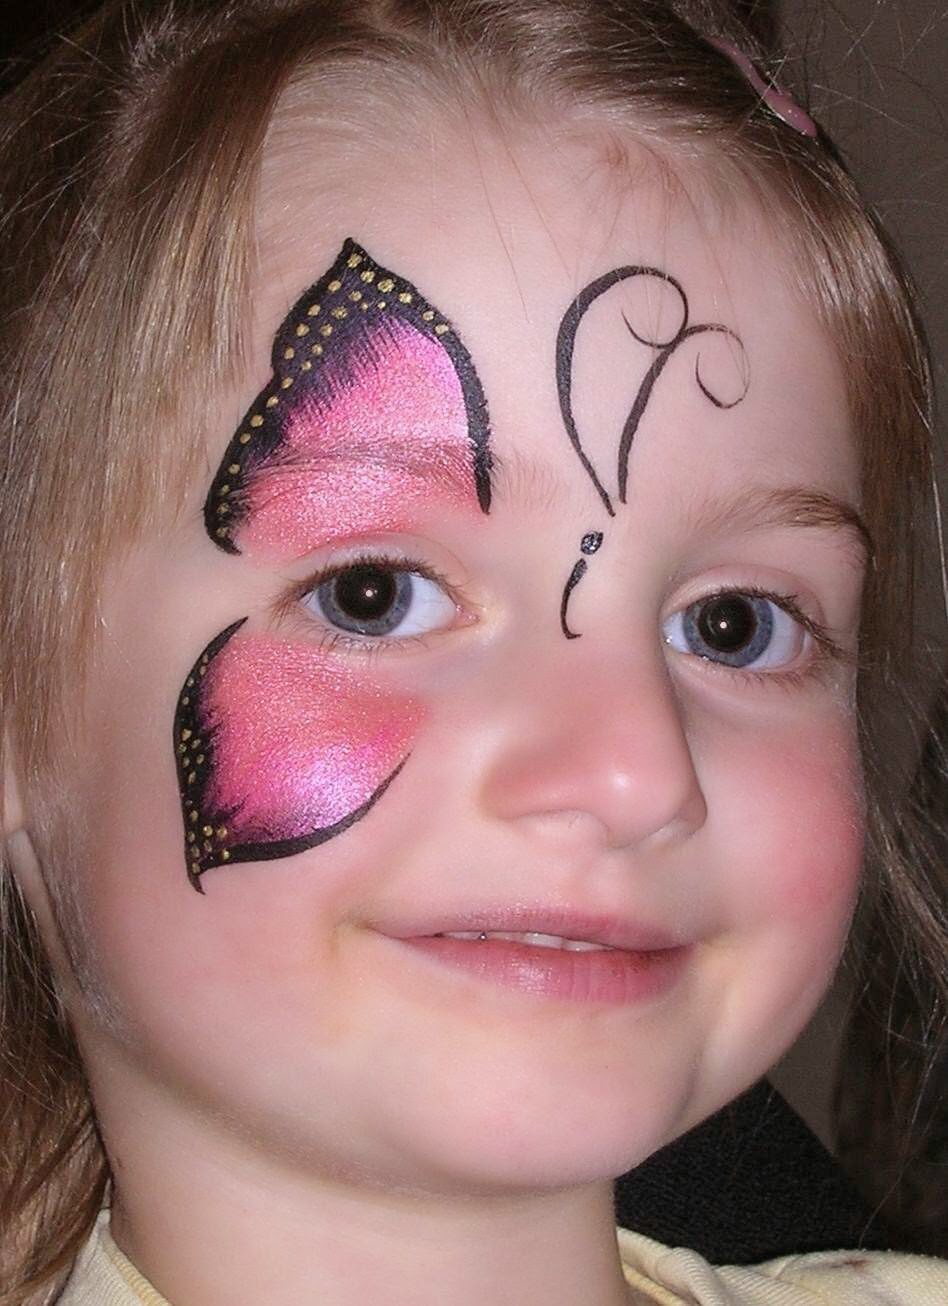 body painting tattoo face painting ideas for kids On birthday face painting